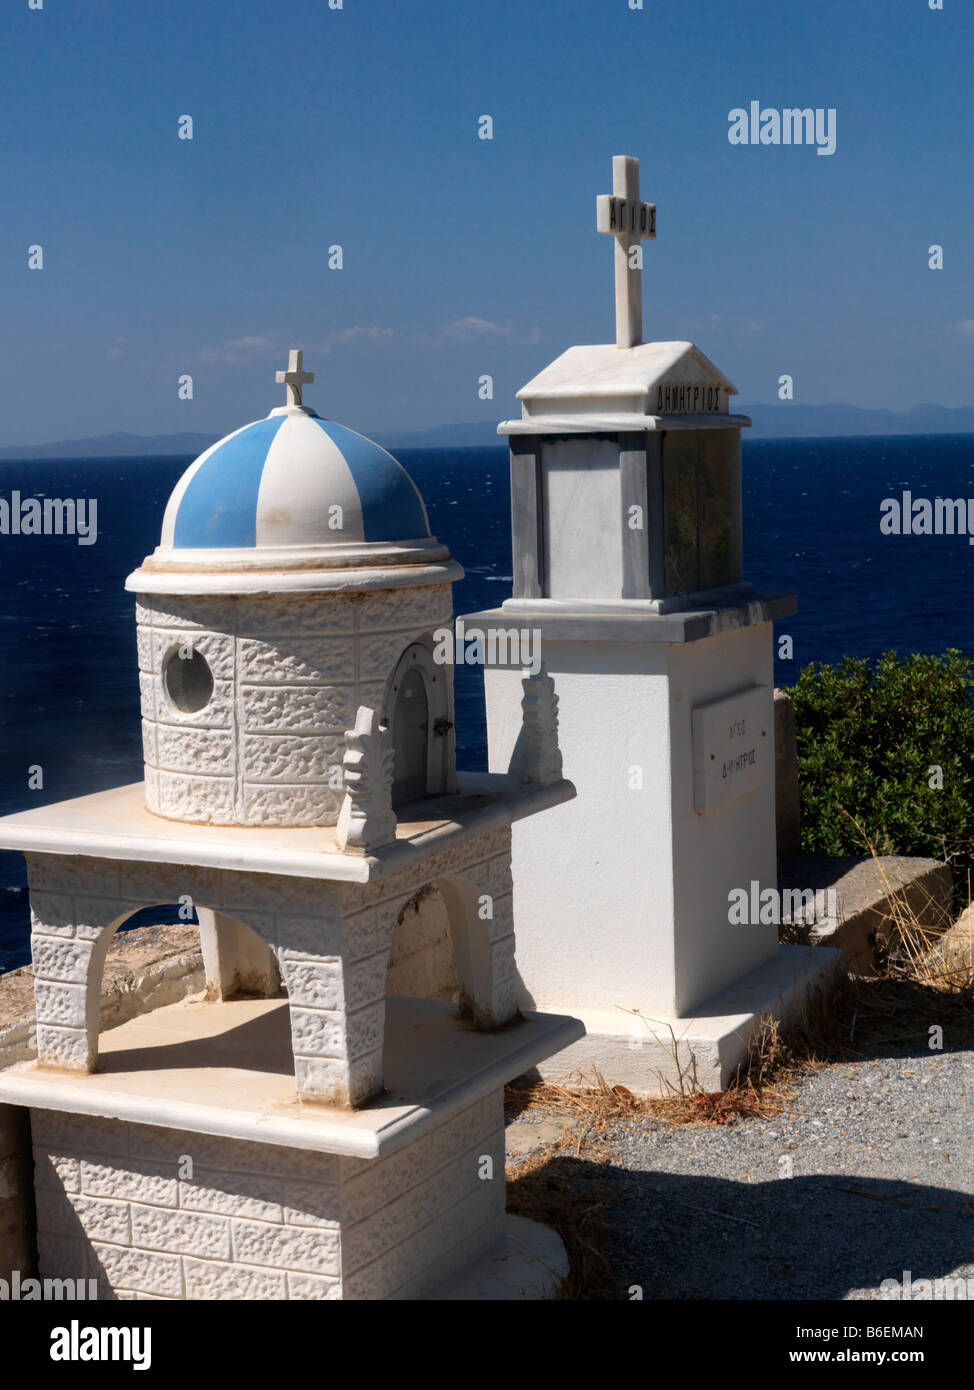 Shrines Kalami Samos Greece - Stock Image